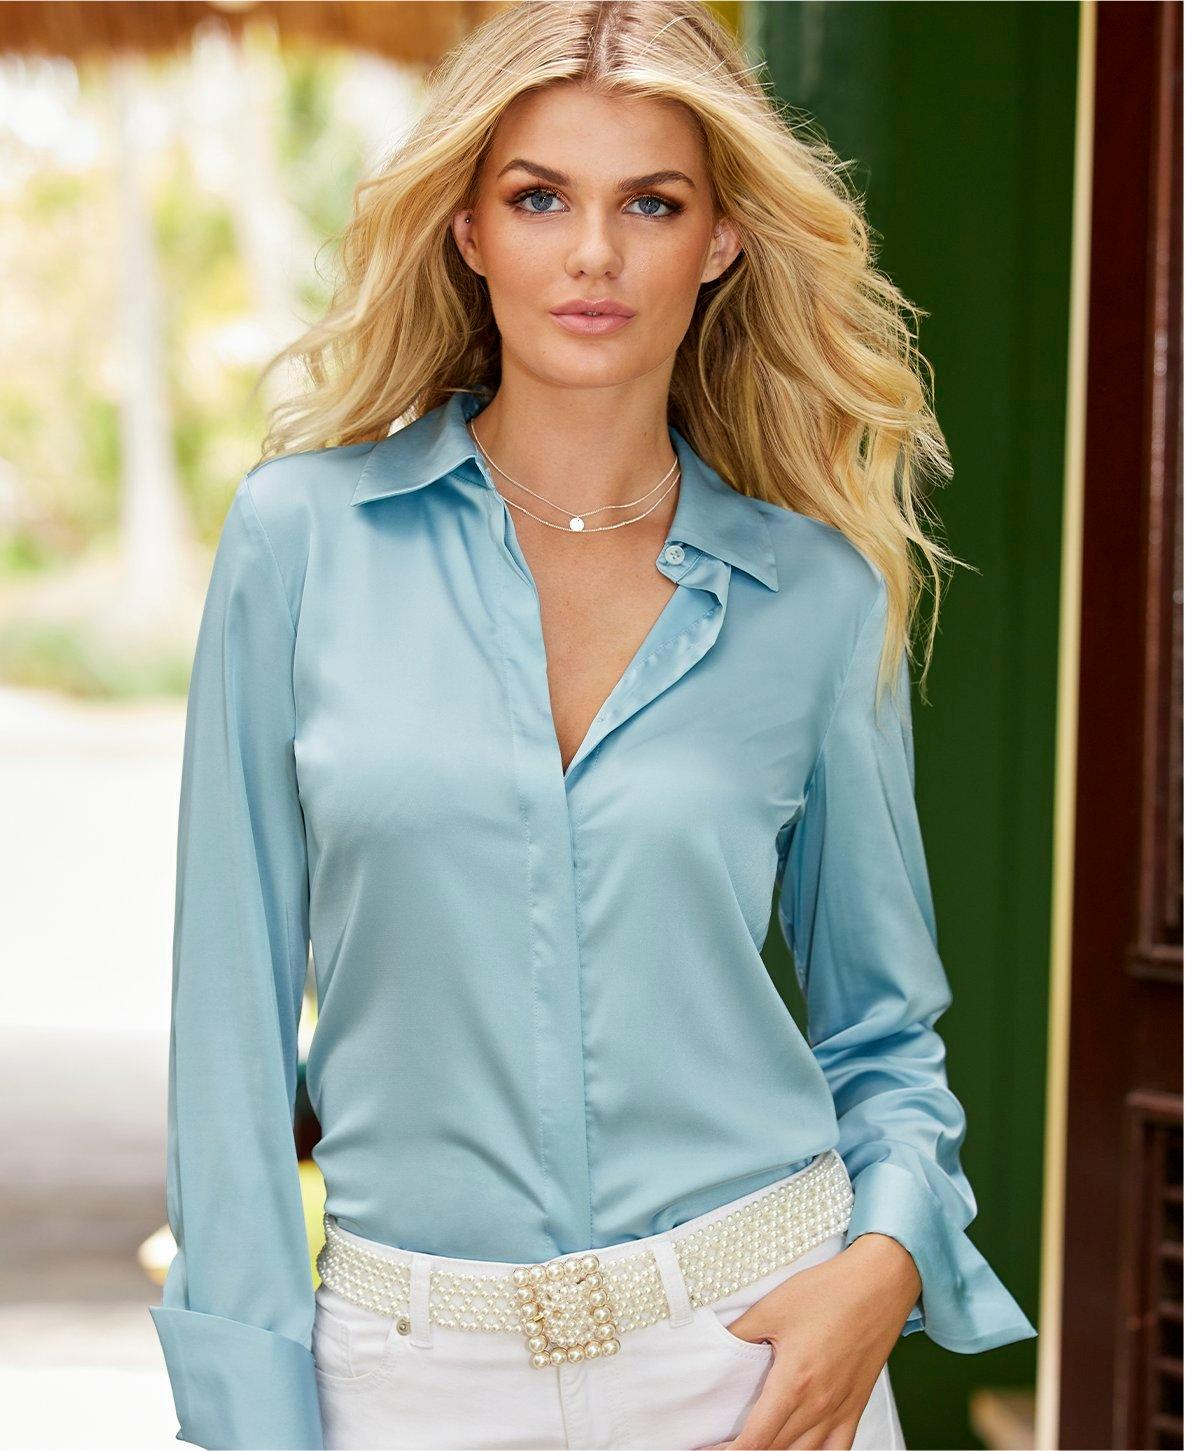 model wearing a light blue button down long-sleeve charm top, pearl belt, and white jeans.